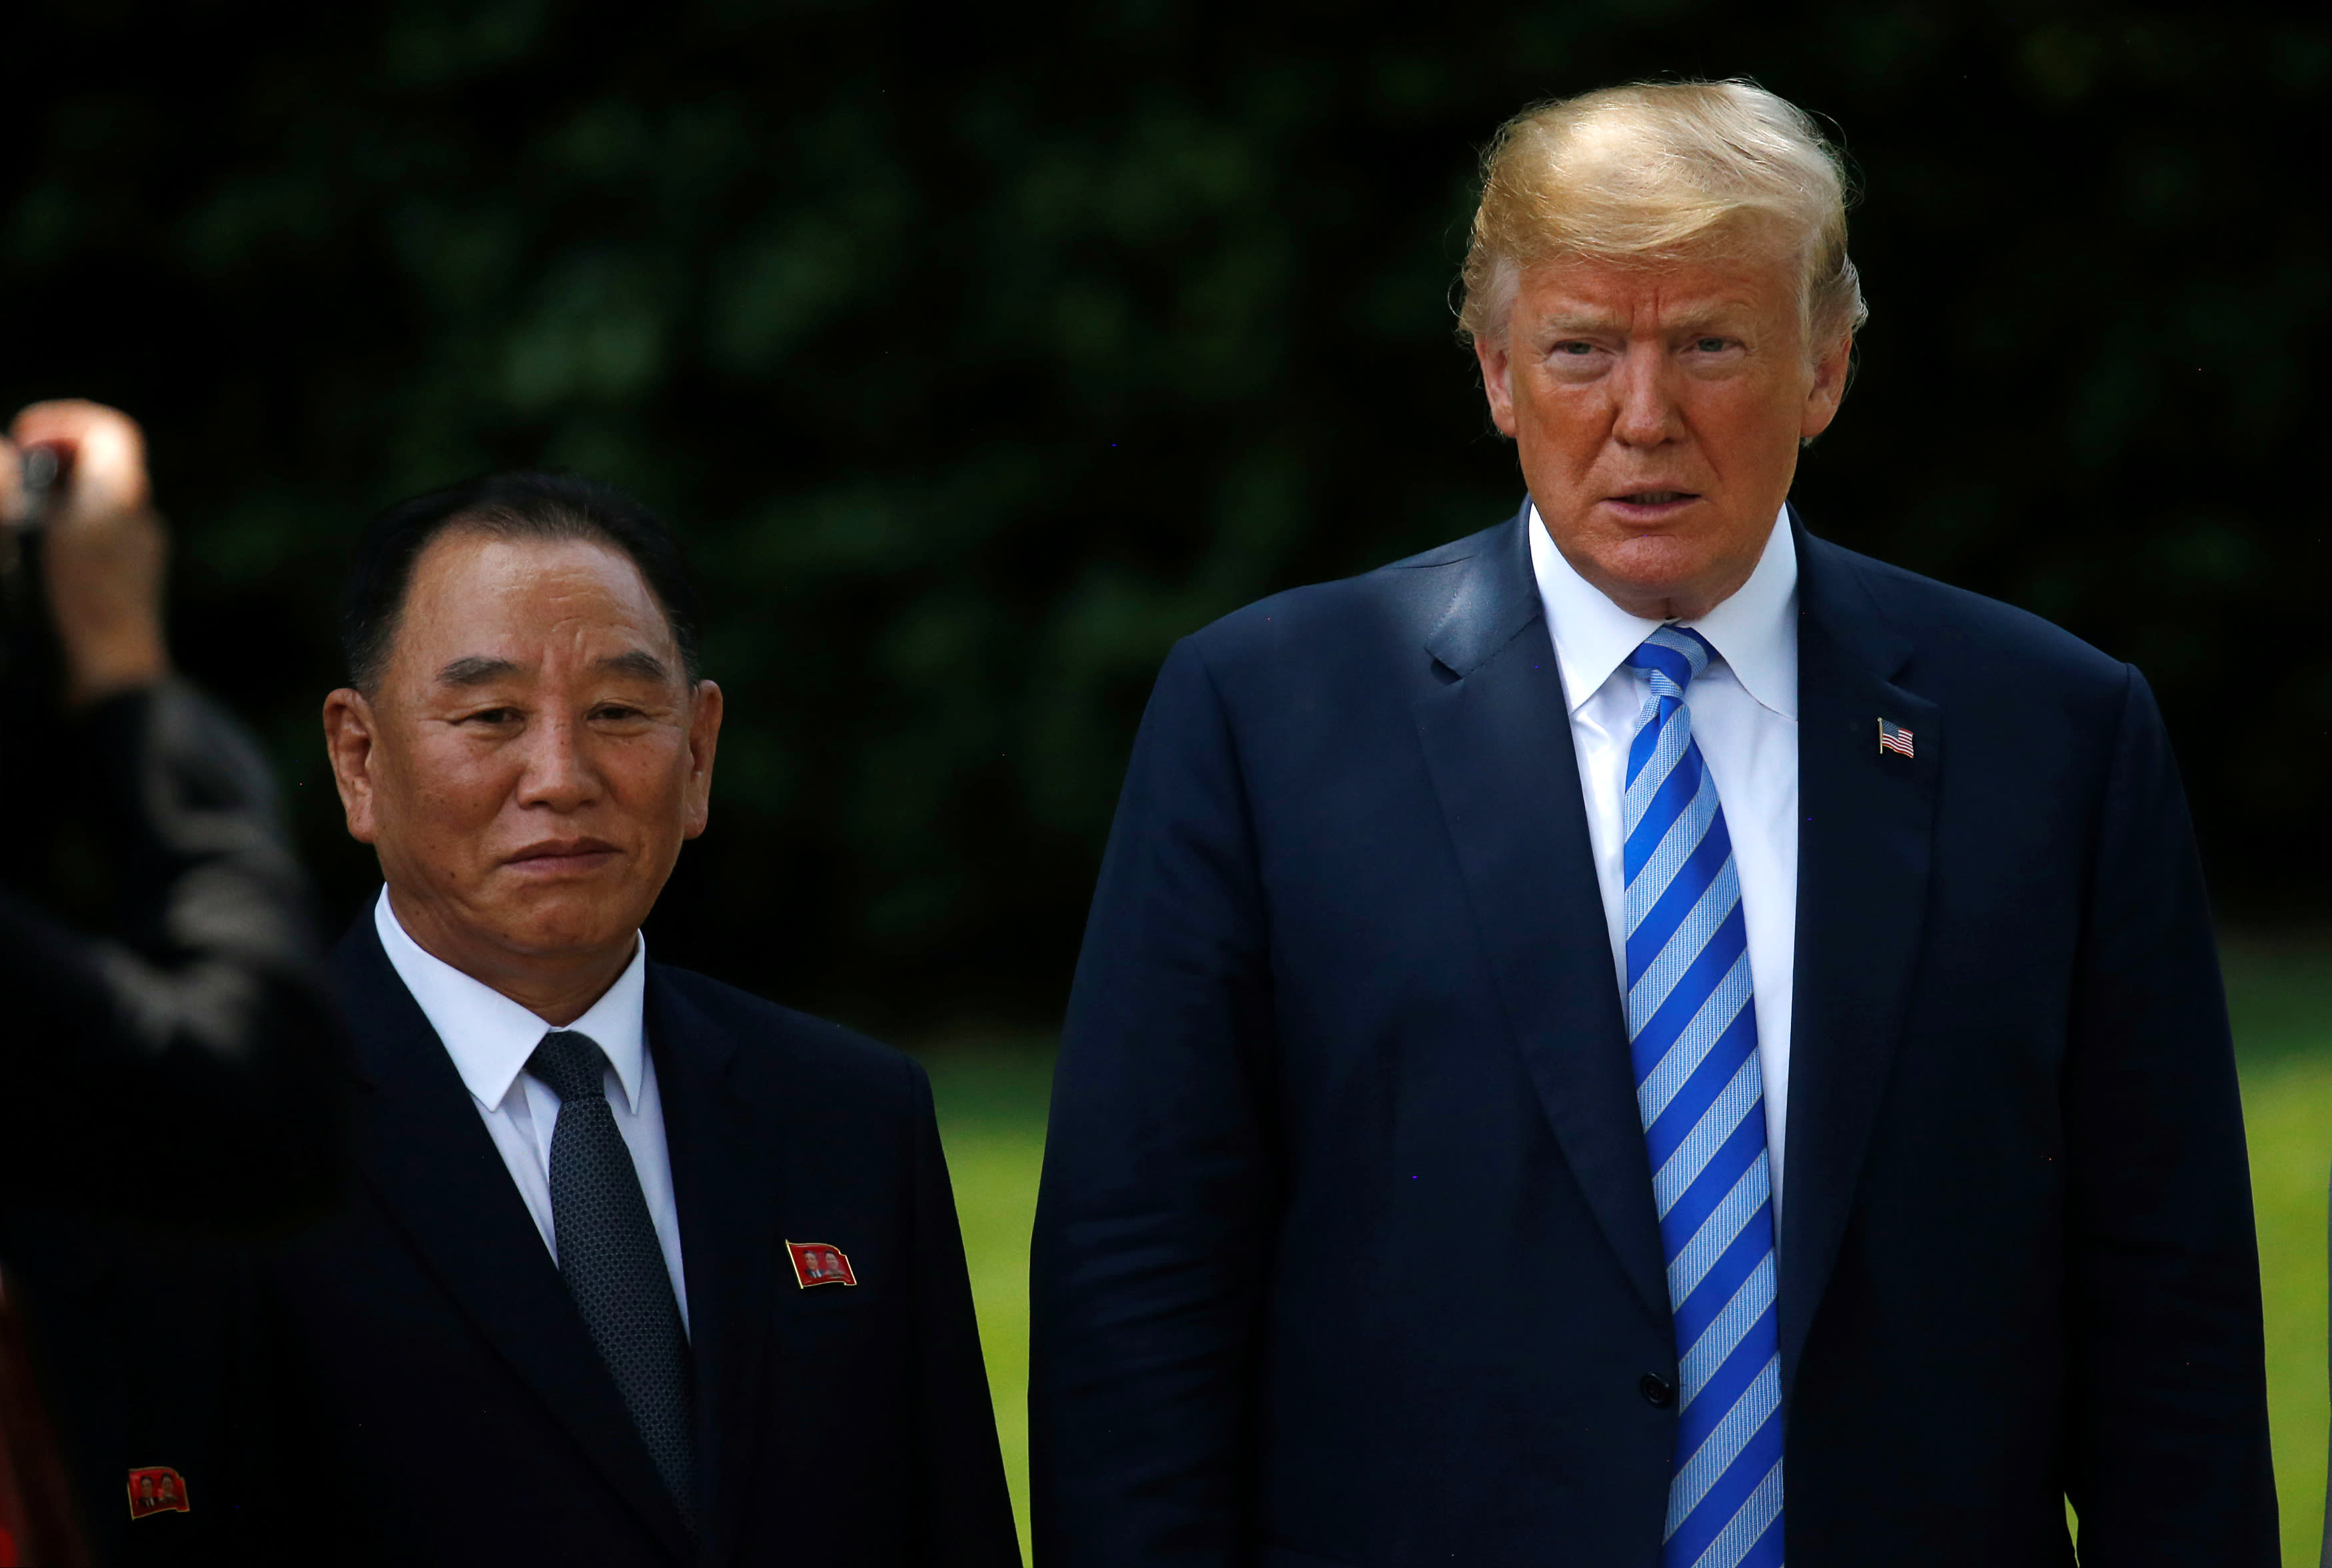 North Korea's envoy Kim Yong Chol poses with US President Donald Trump for a photo as he departs after a meeting at the White House in Washington, US, June 1, 2018 (Reuters/Leah Millis)